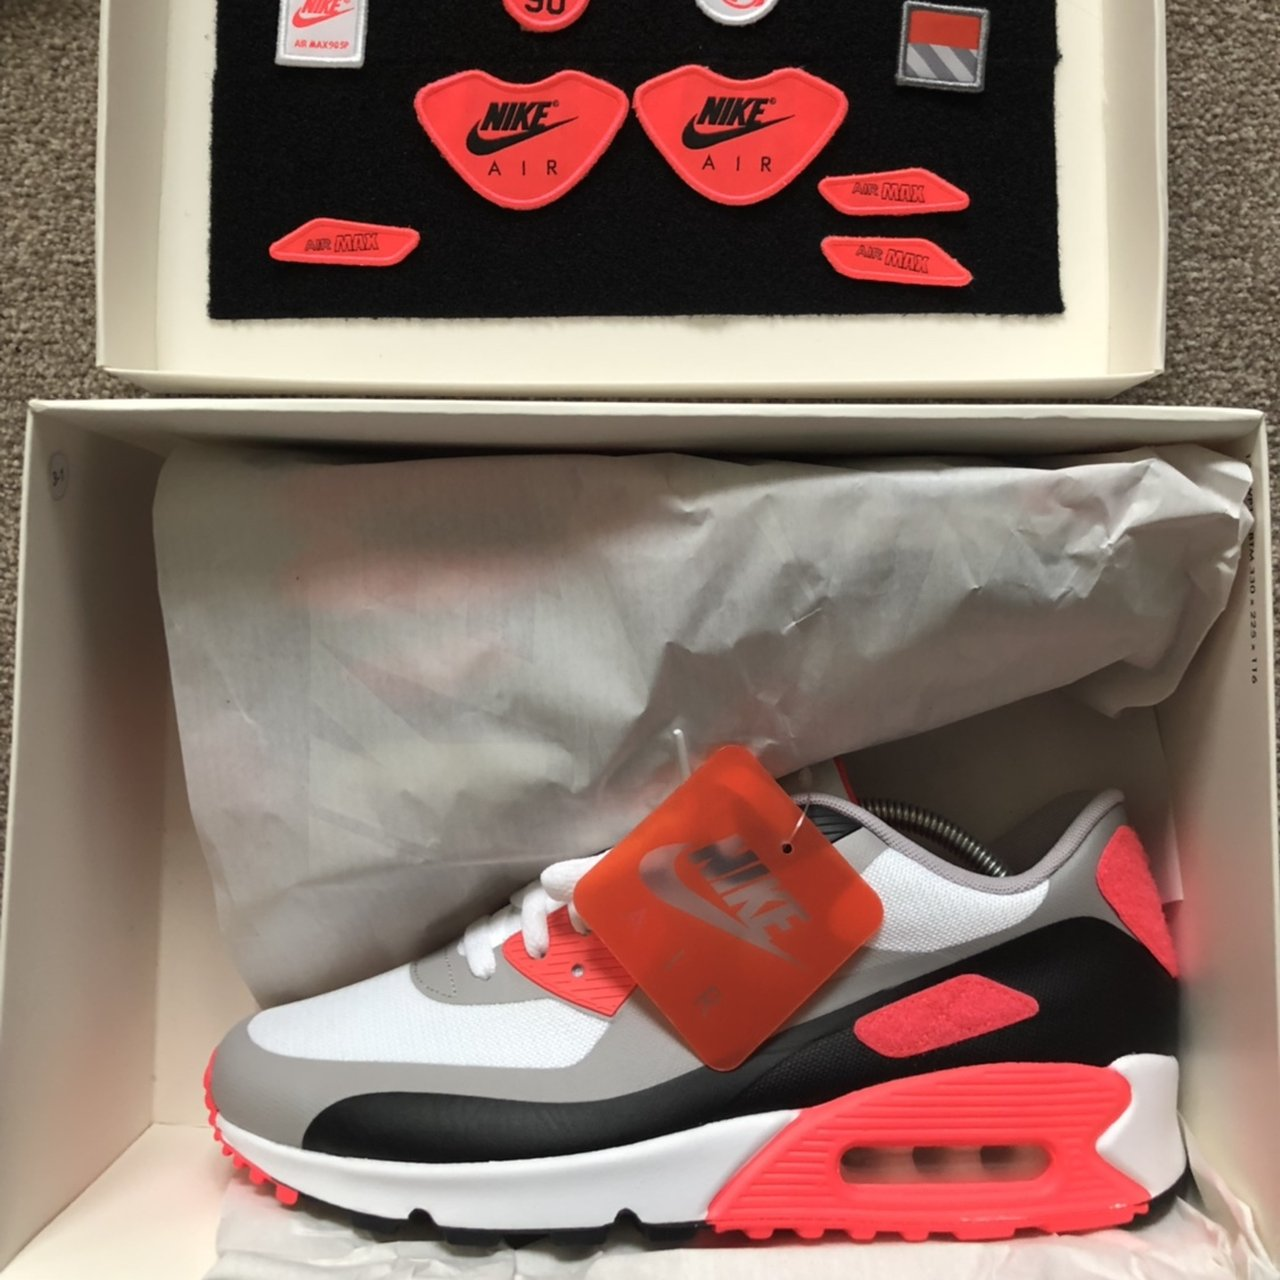 huge discount 36ac5 3cfbf  harba1994. 8 months ago. Consett, United Kingdom. Nike air max 90 infrared  patch ...